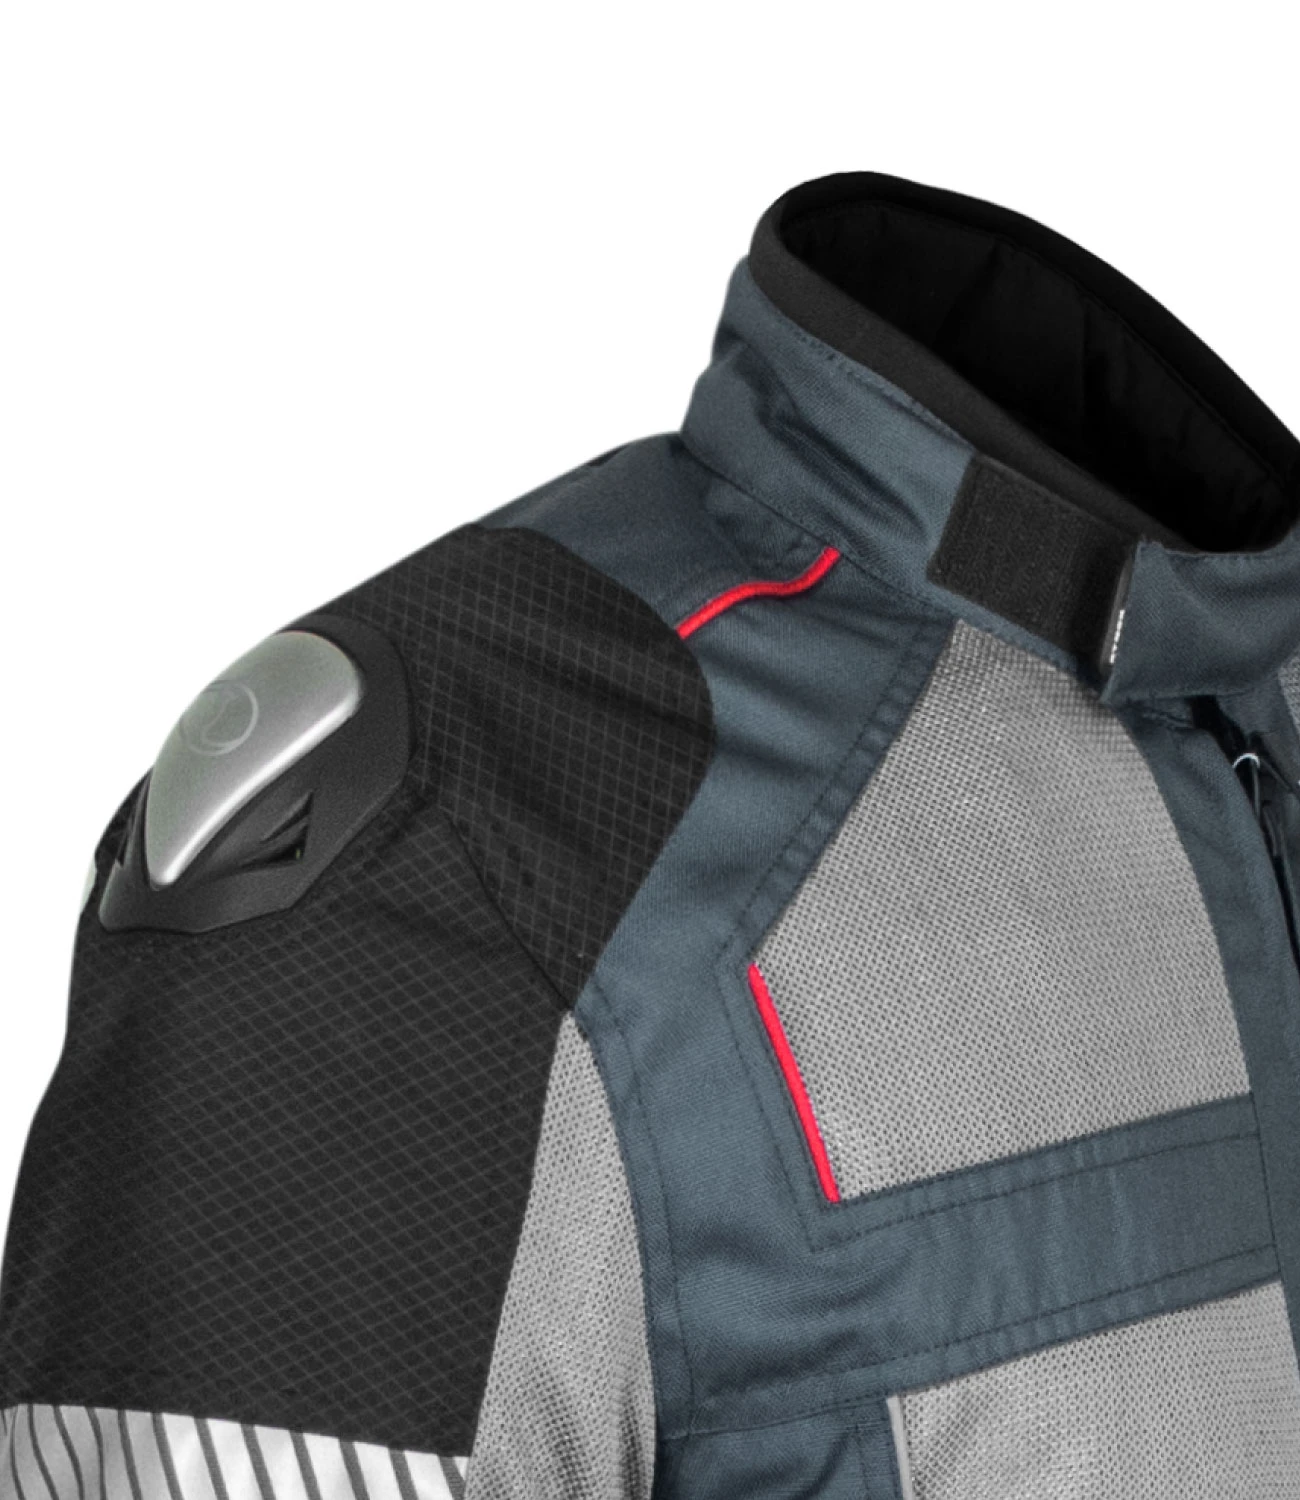 RYNOX STORM EVO JACKET - KNIGHT GREY